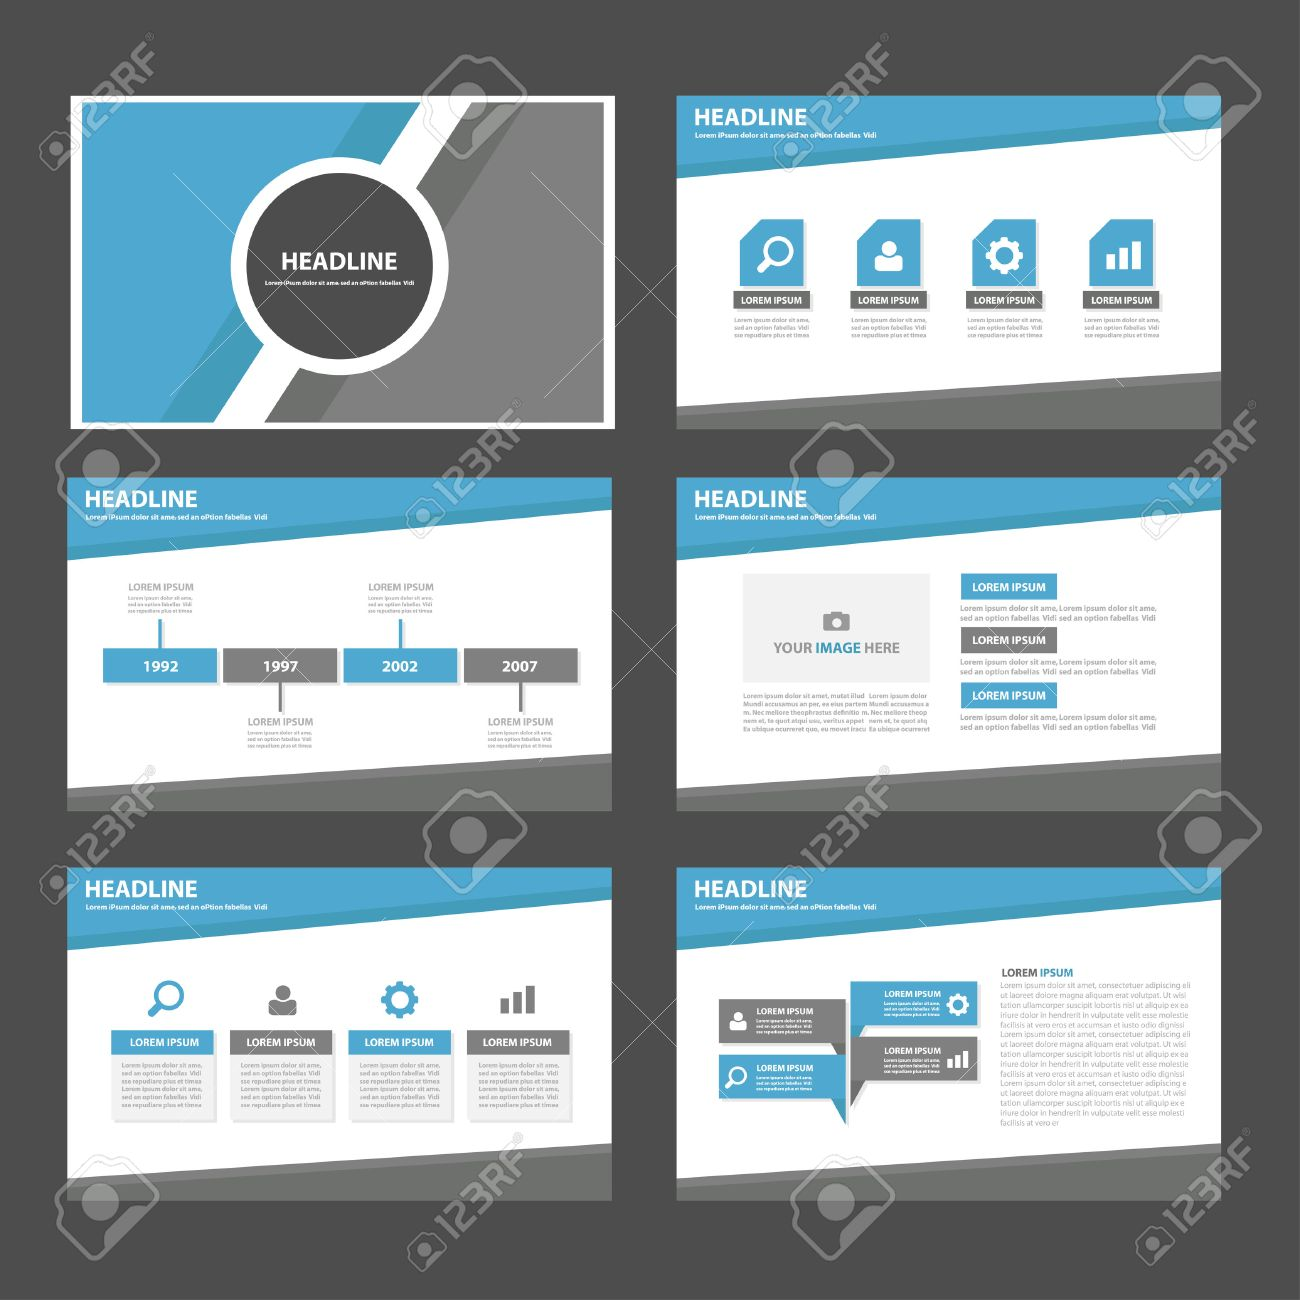 powerpoint stock photos images. royalty free powerpoint images and, Templates